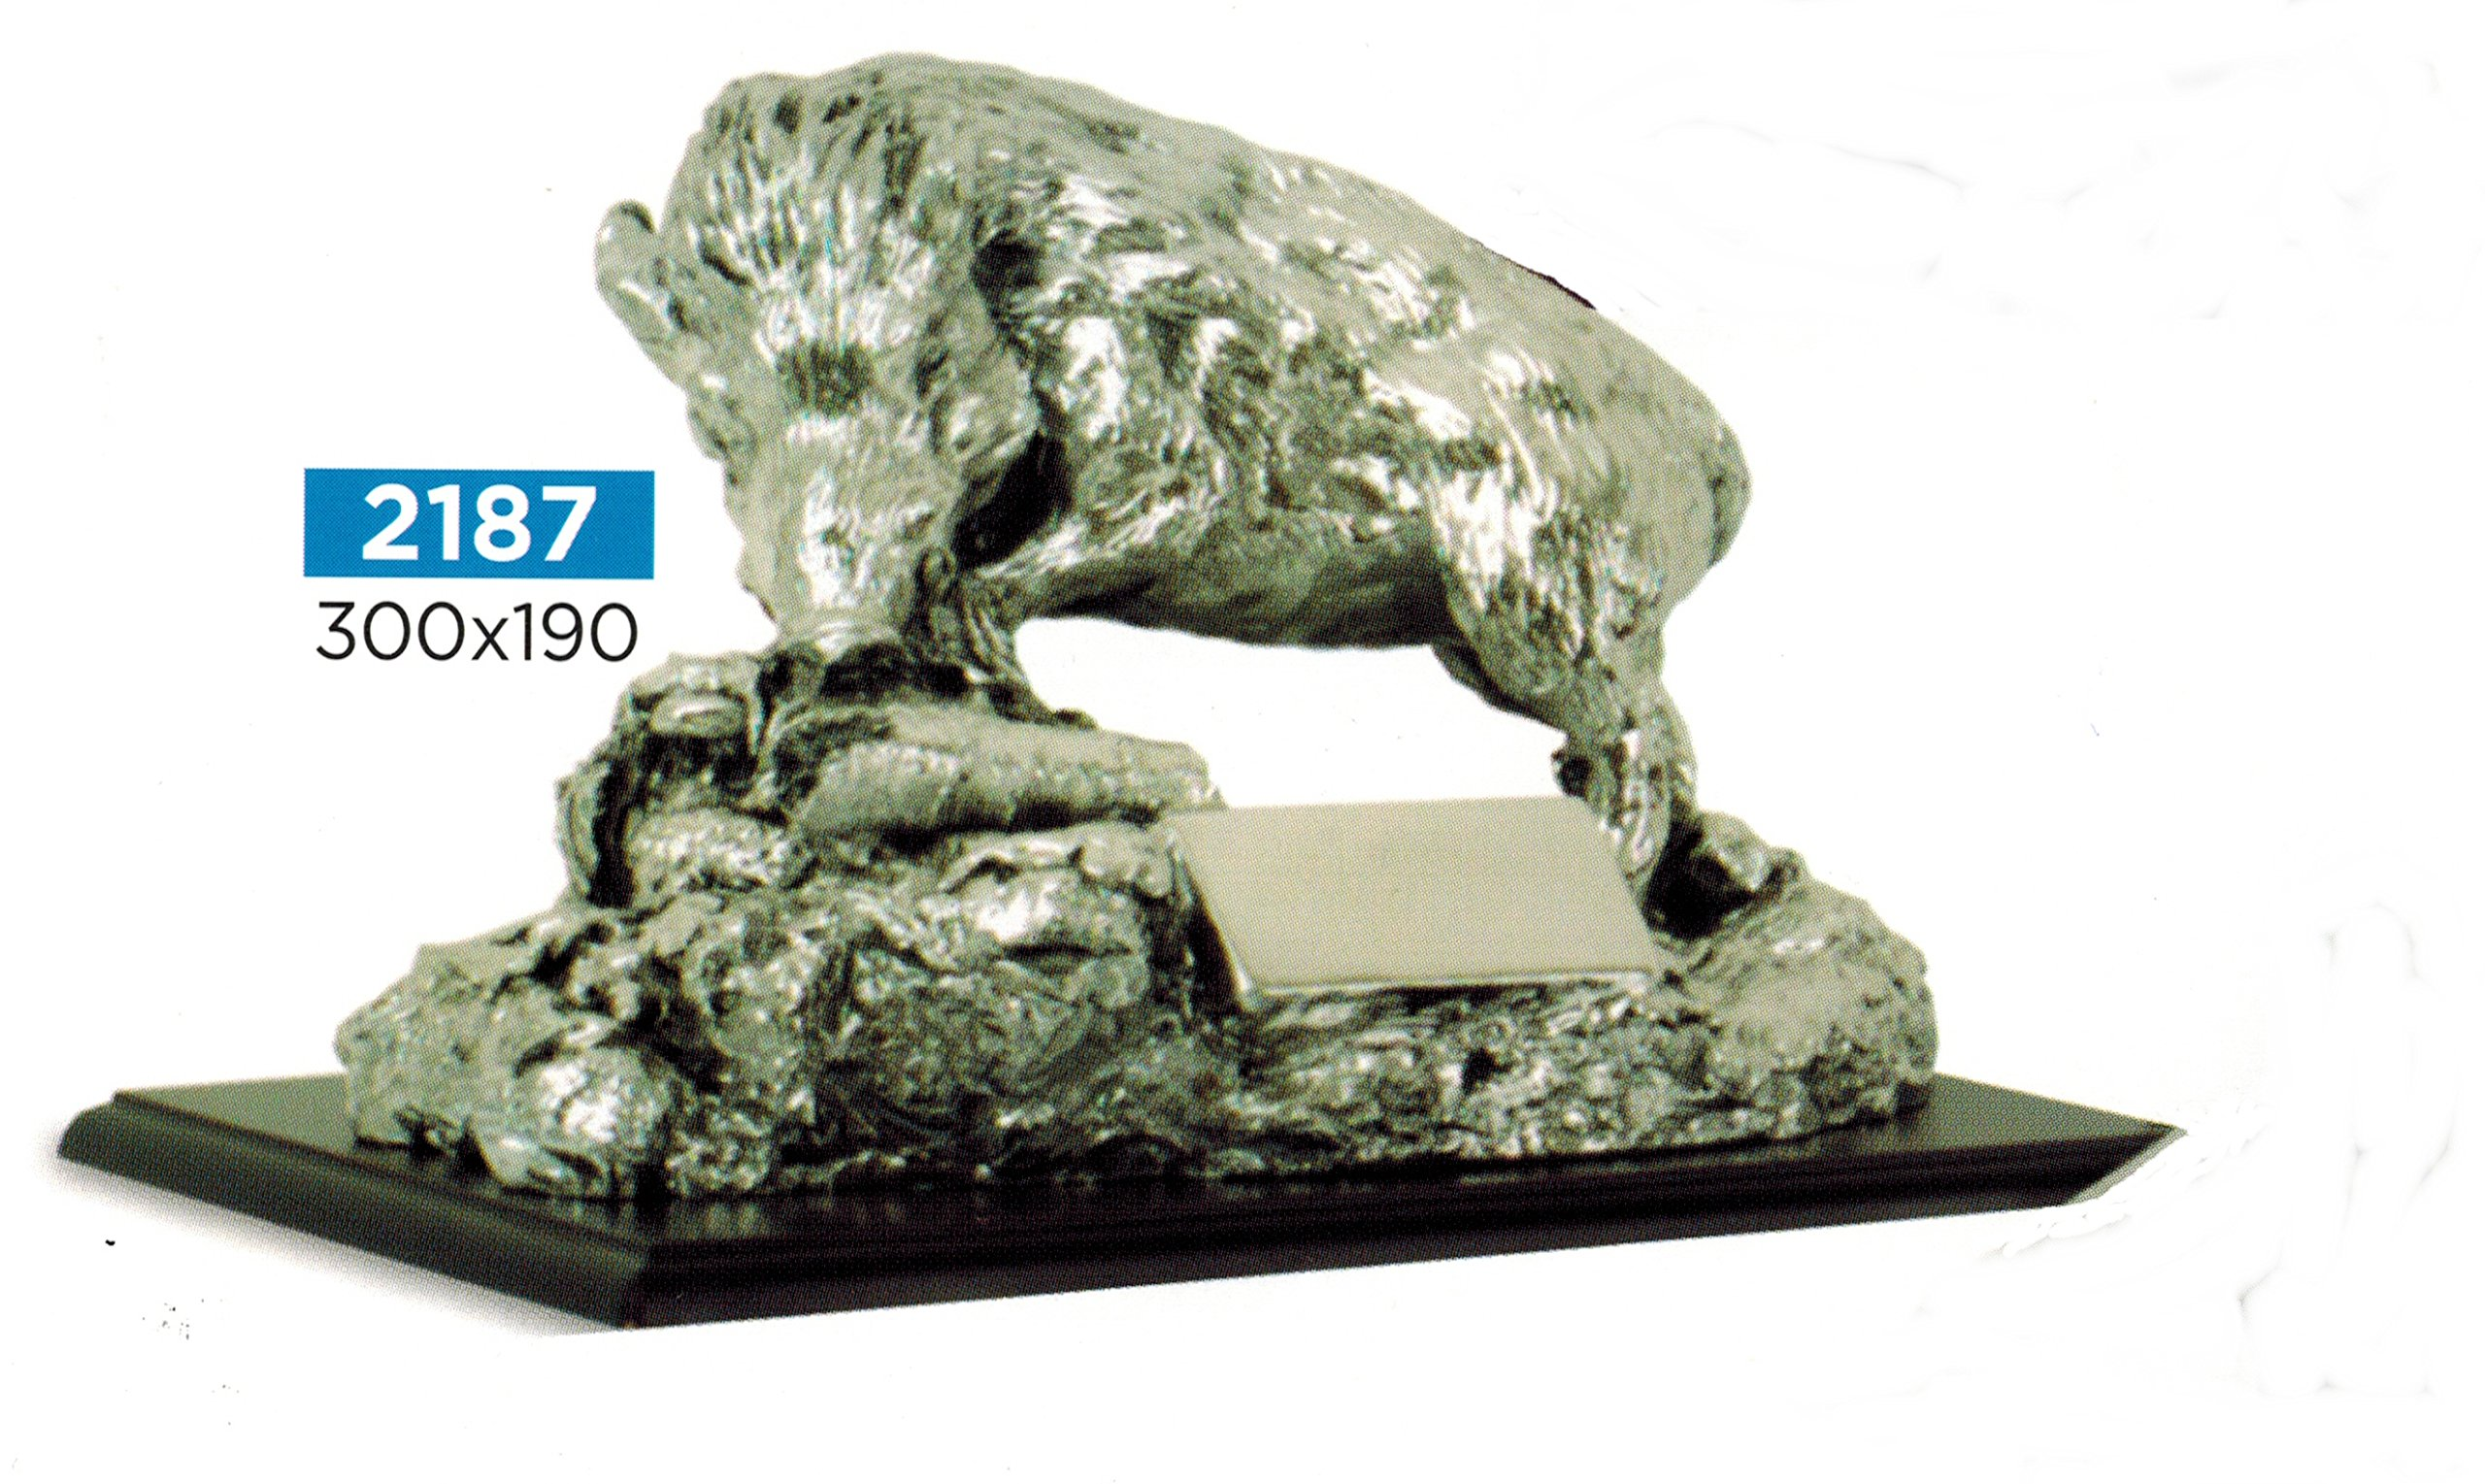 Trophy for award ceremony Statue Wild Boar on Rock – 30 x 19 cm – Finished – Made in Italy – Gift Idea